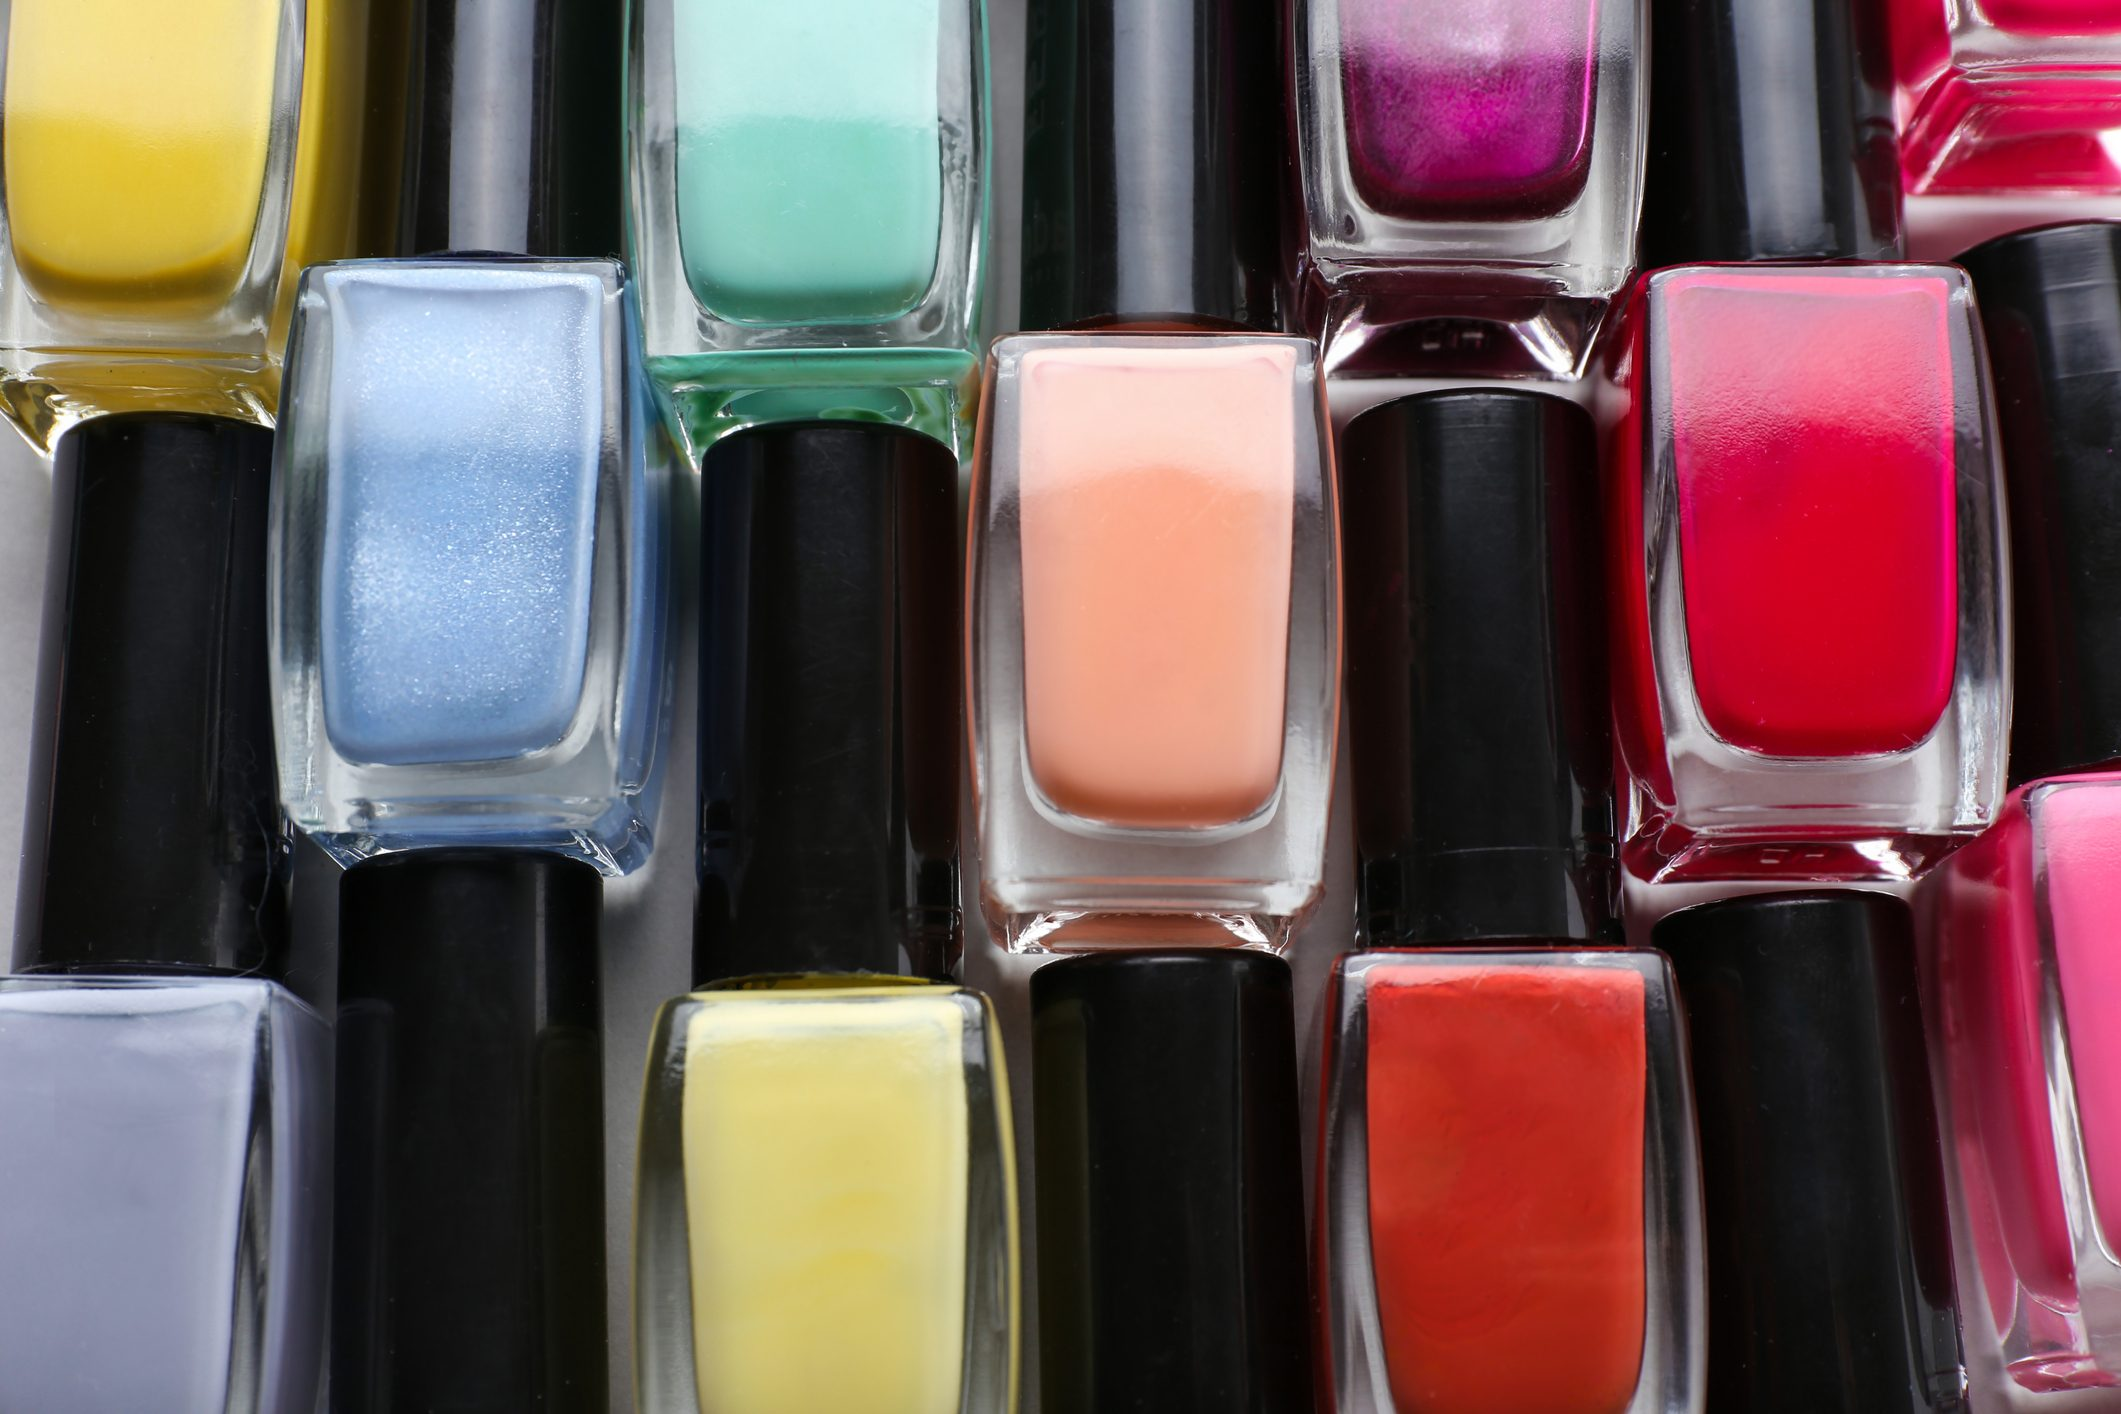 Bottles of colorful nail polishes on table, closeup